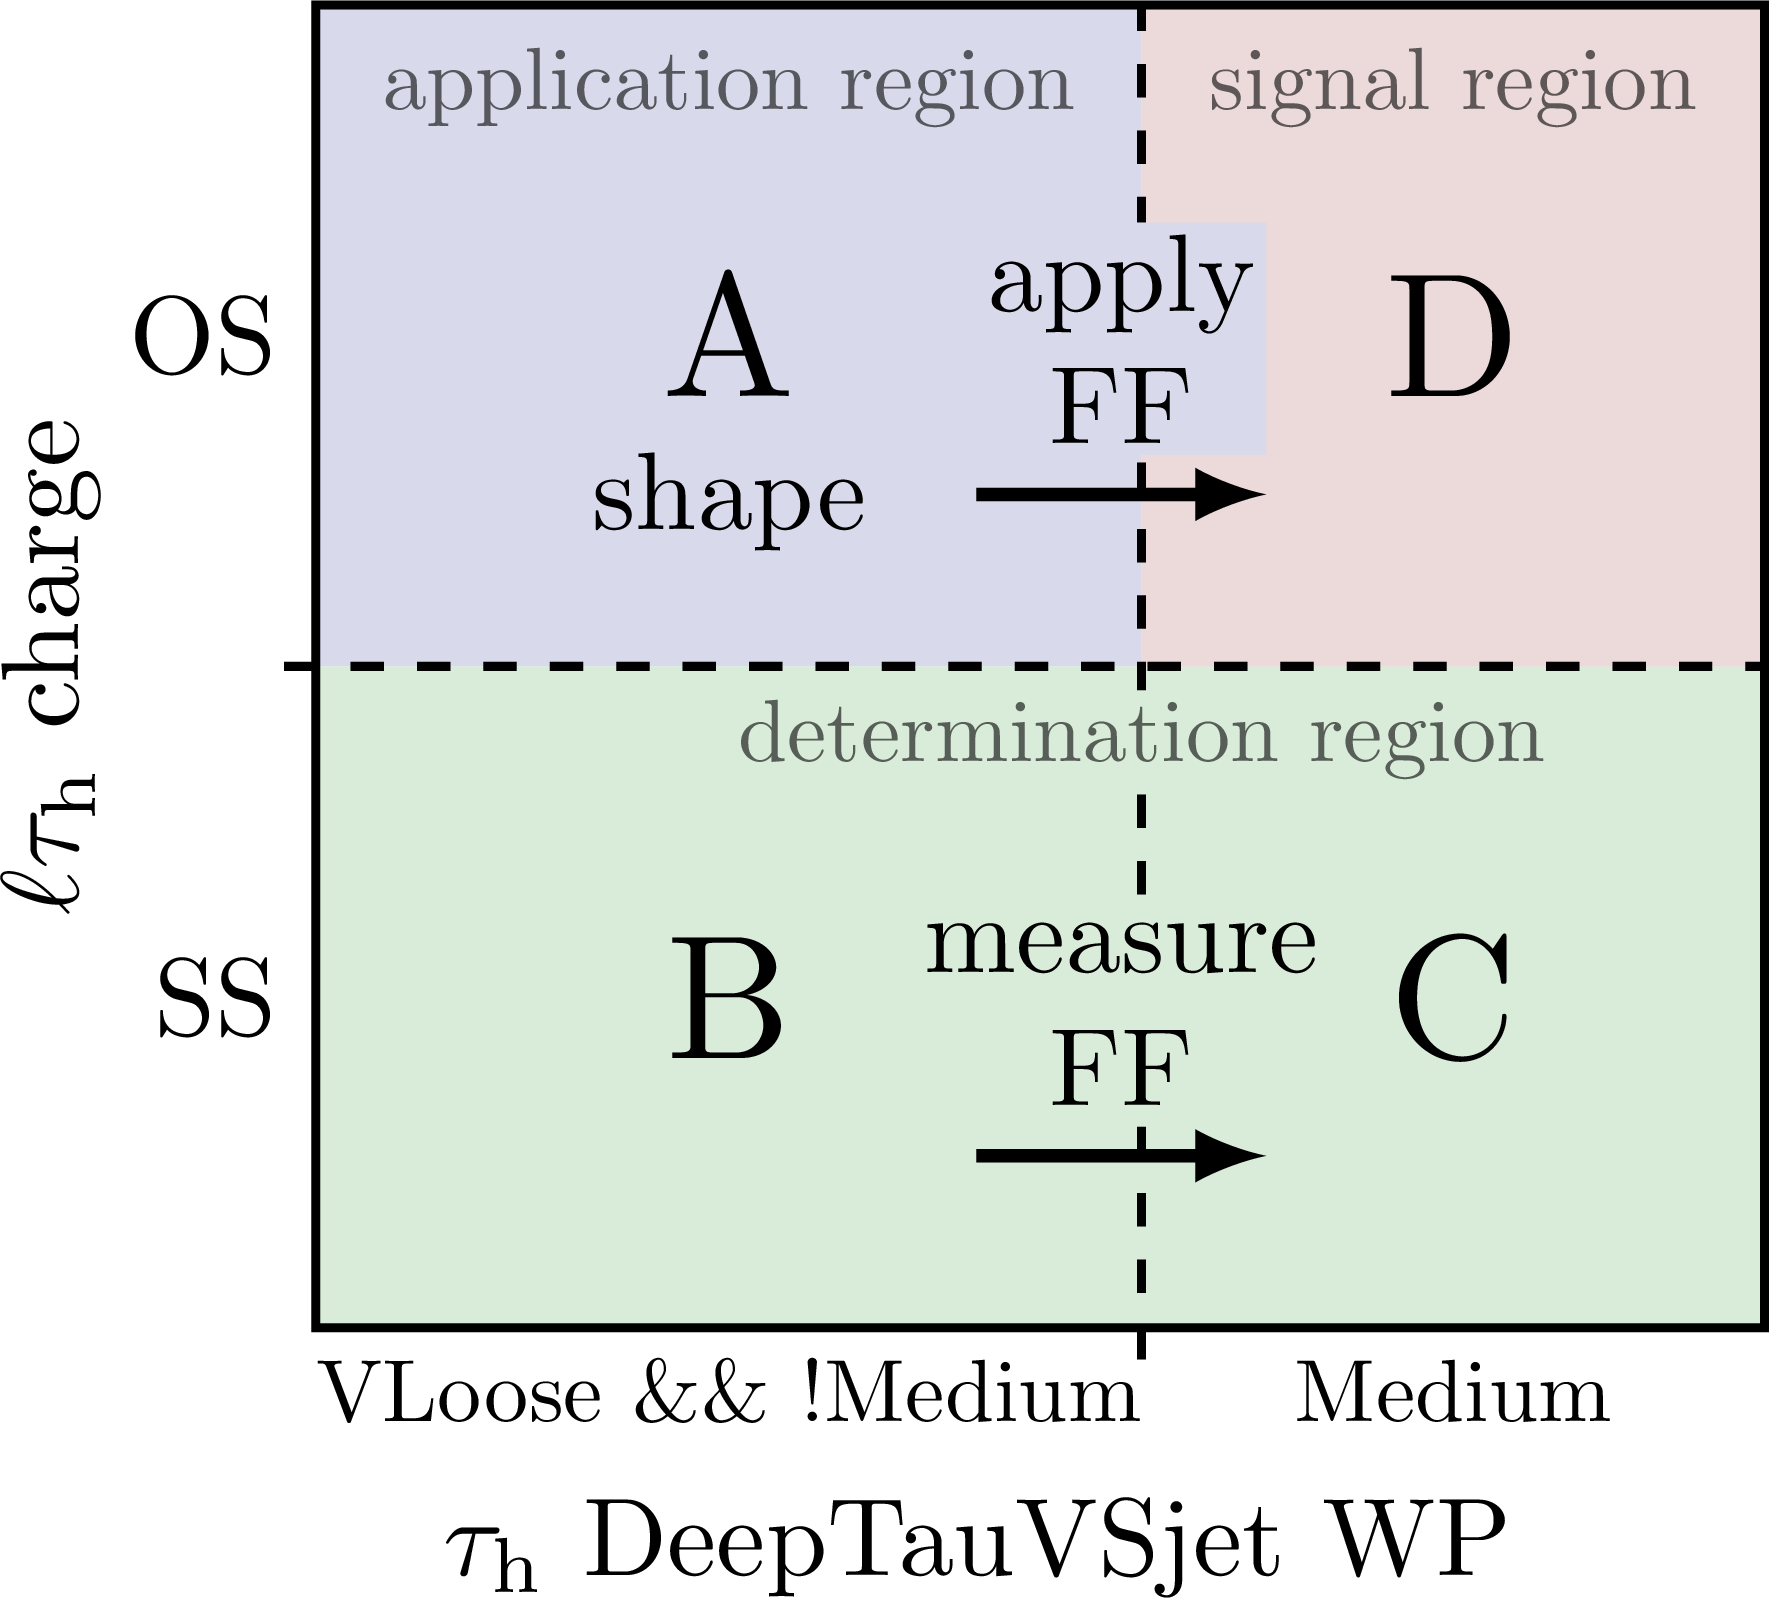 control_region_abcd-001.png